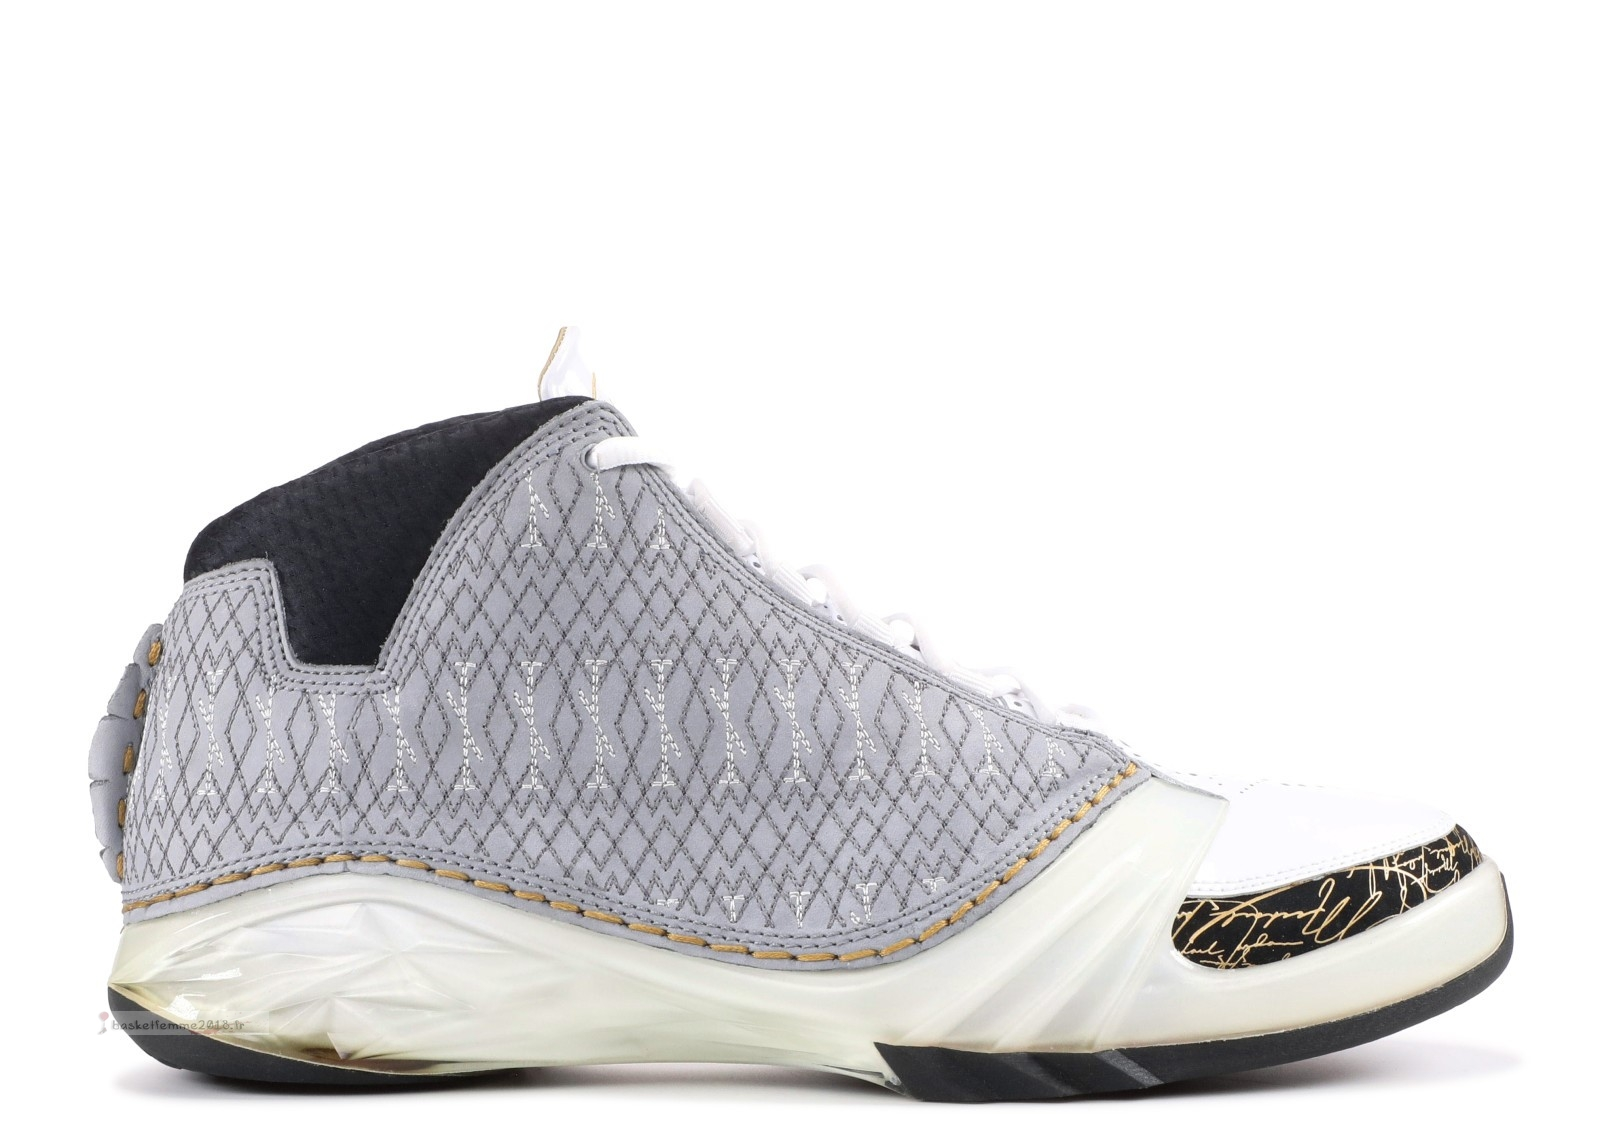 Air Jordan 23 Blanc Noir Or (318376-102) Chaussure de Basket